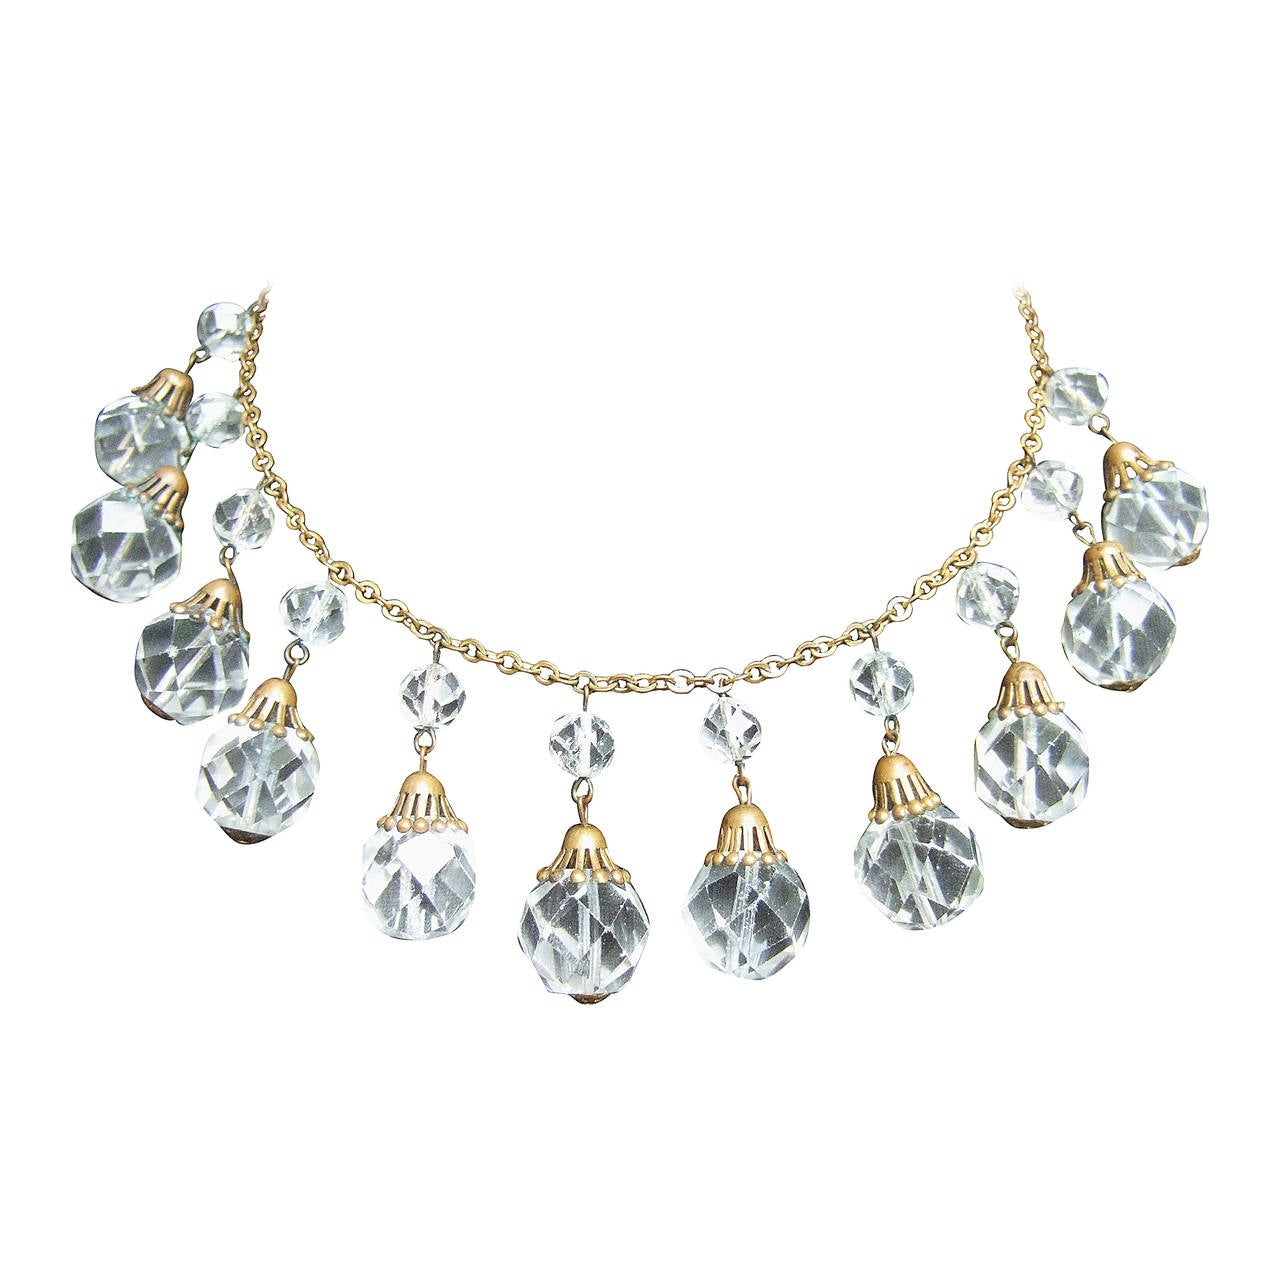 Opulent Art Deco Crystal Drop Necklace c 1940s 1